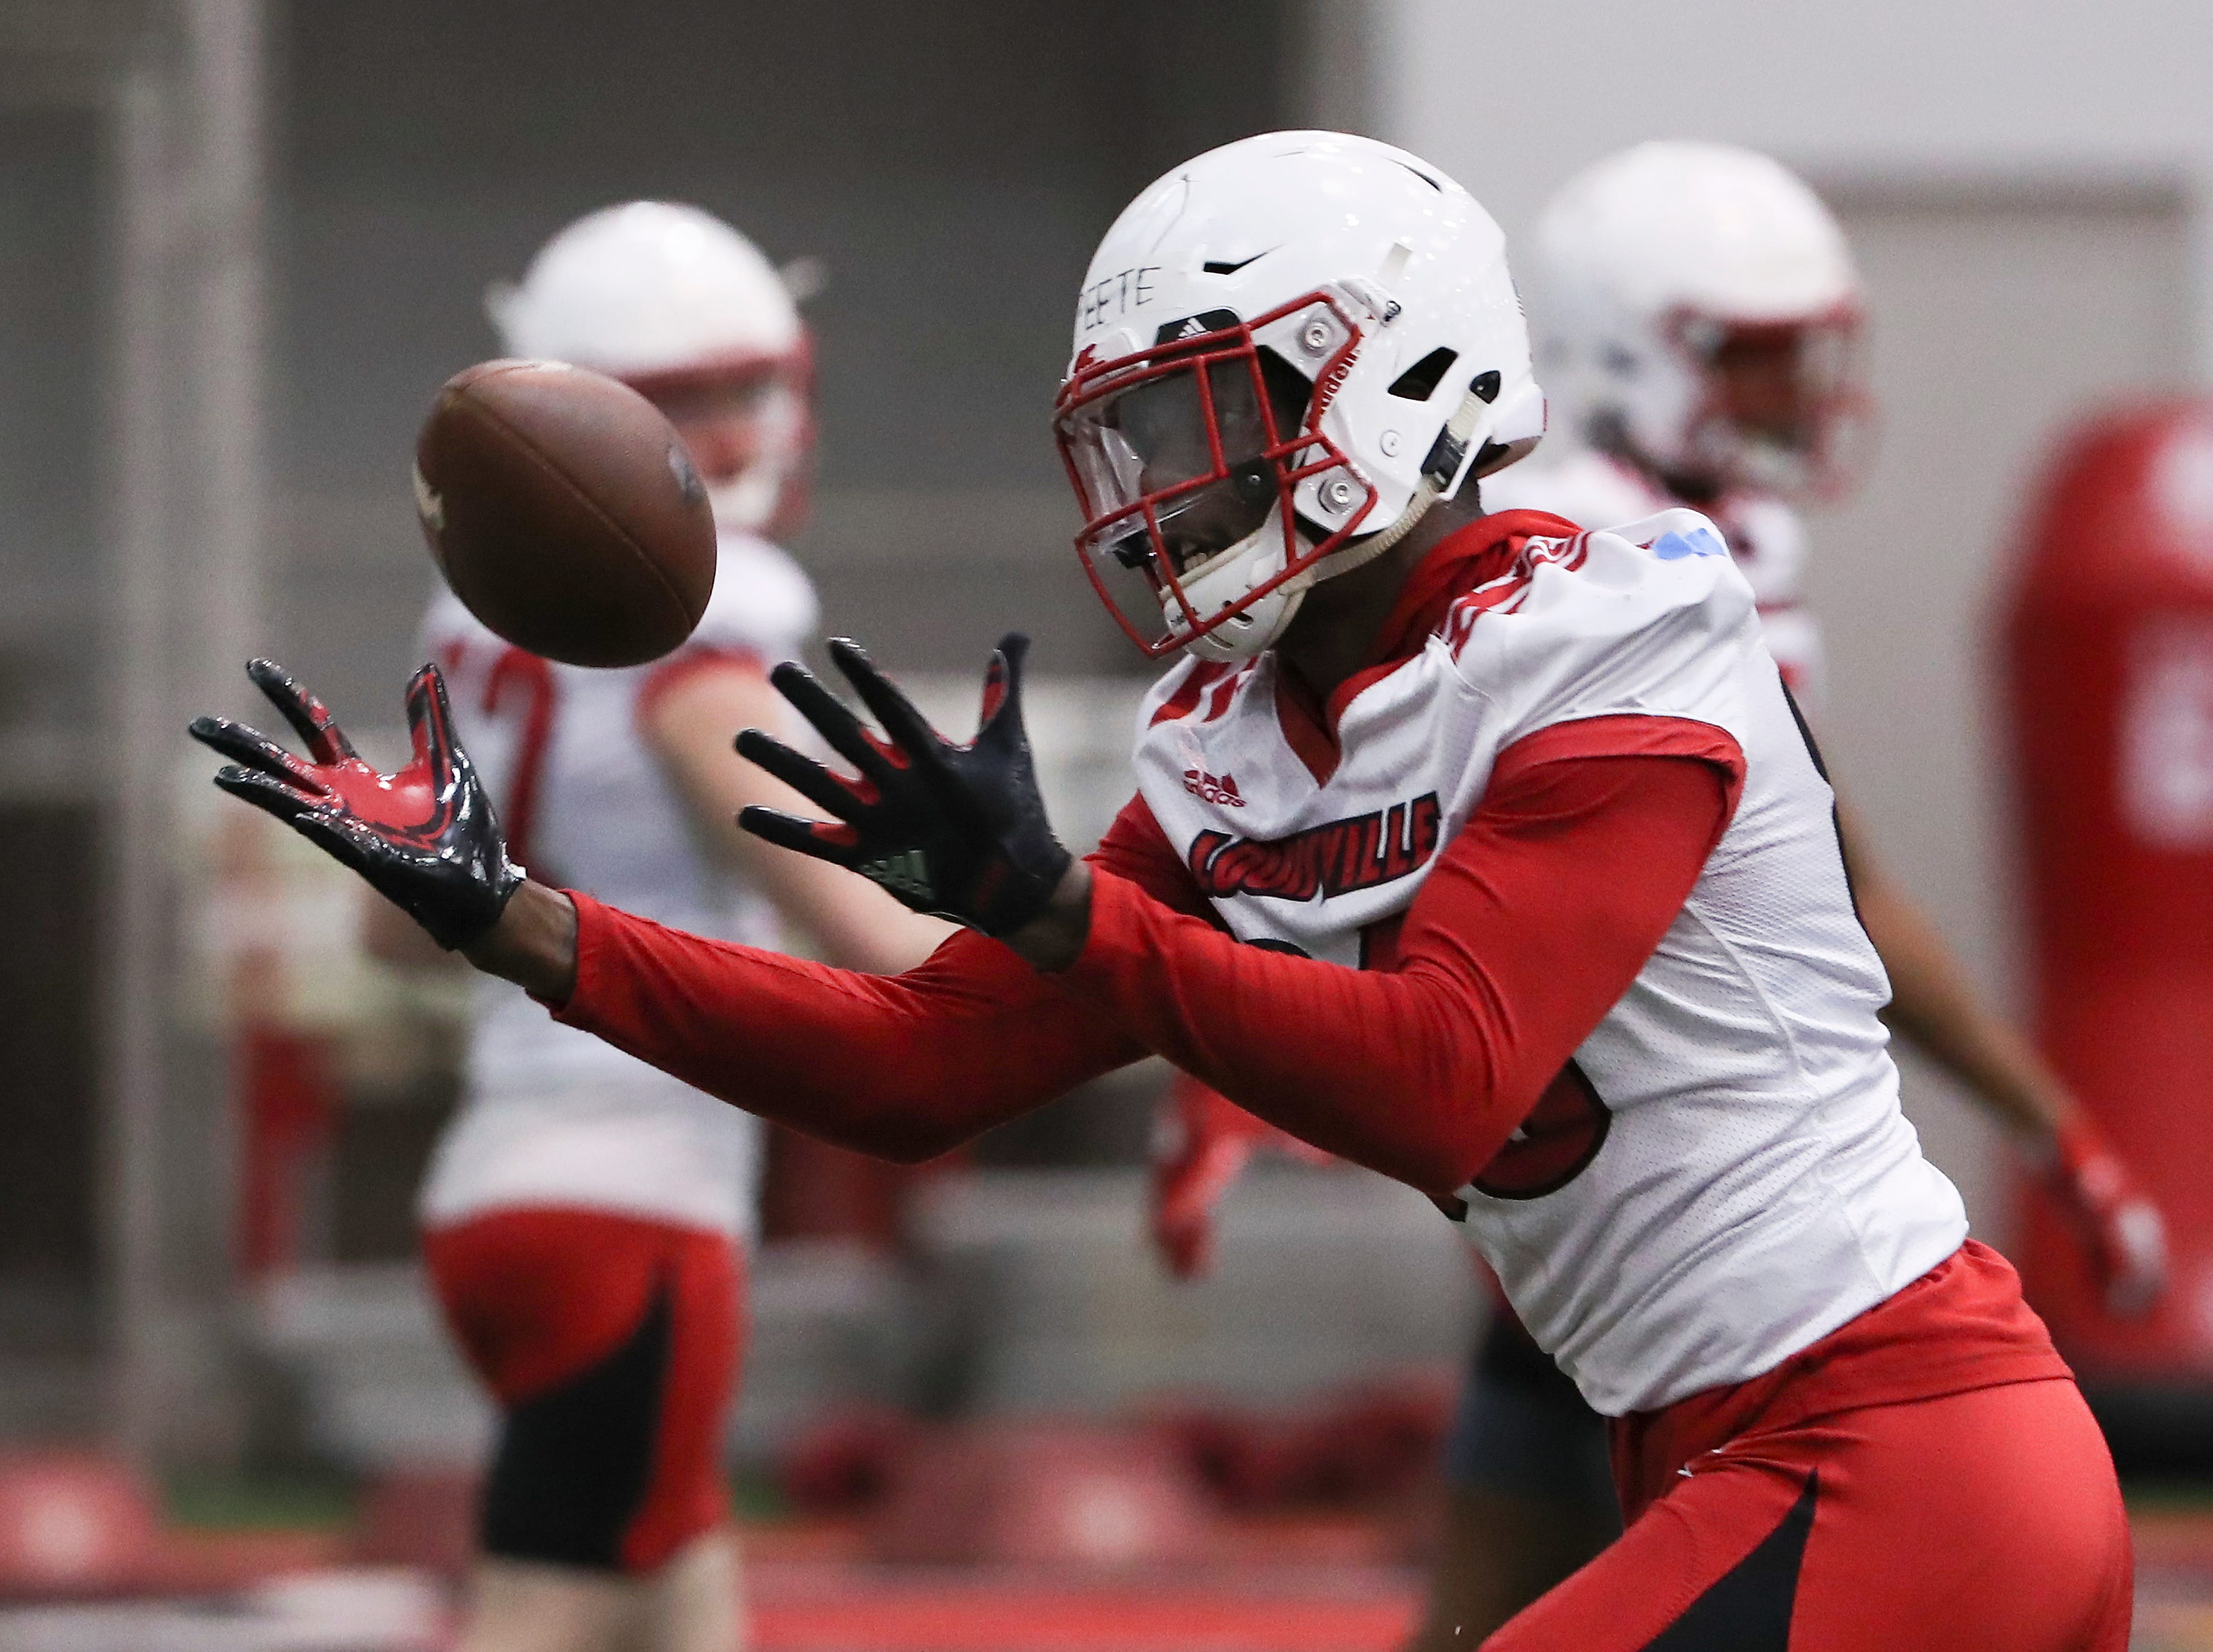 U of L's Devante Peete (86) hauled in a pass during practice at the Trager Center.